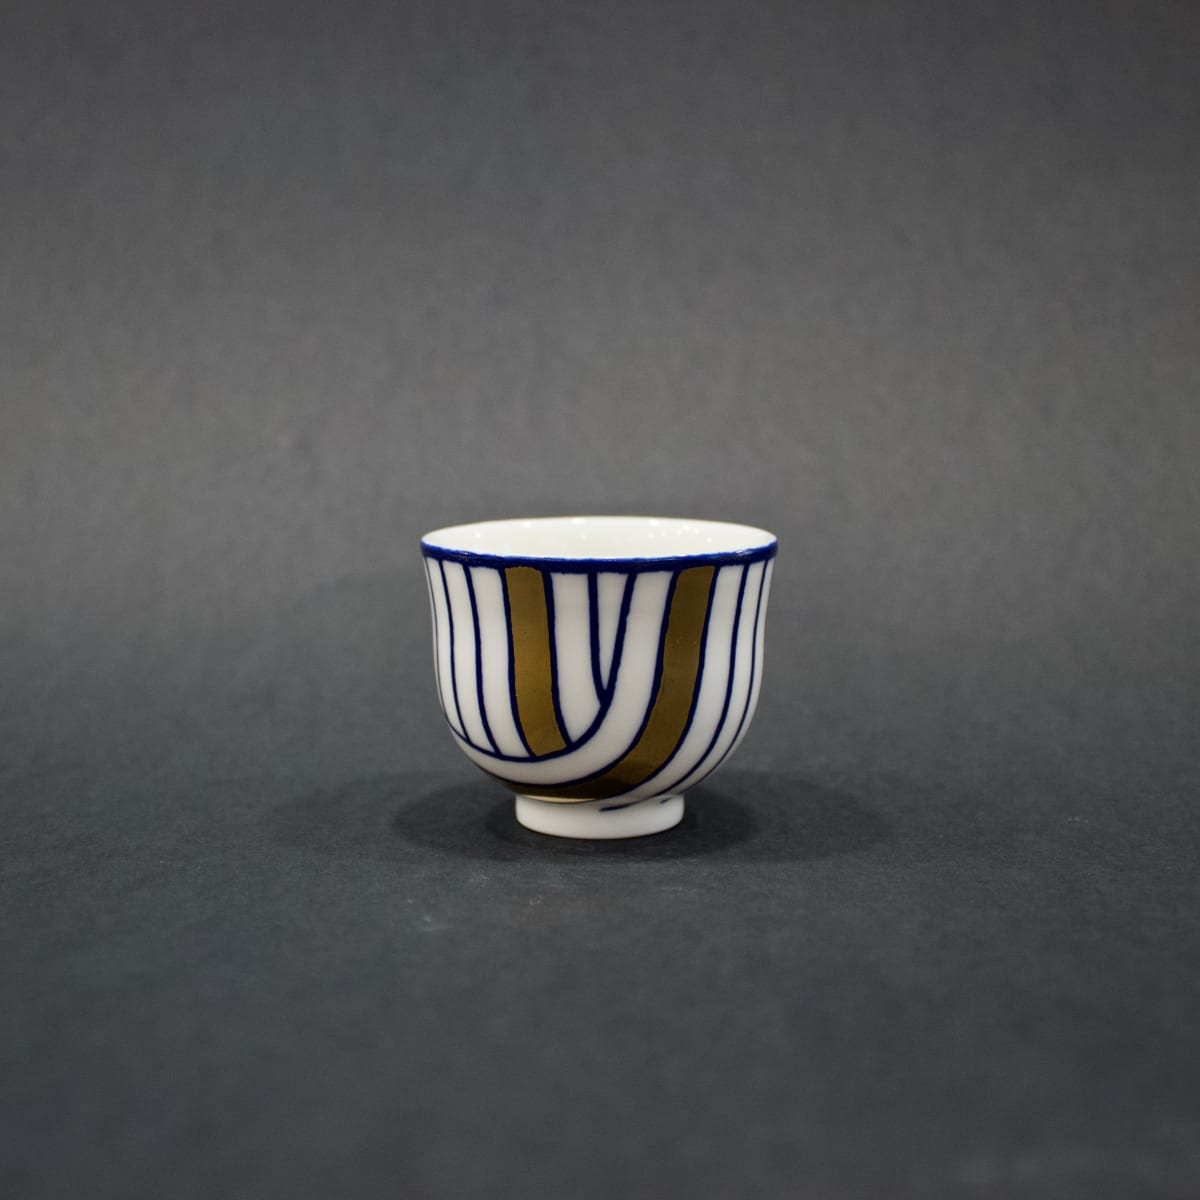 Rhian Malin Layered Lines Cup, 2019 Porcelain 5 x 6 x 6 cm 2 x 2 3/8 x 2 3/8 in